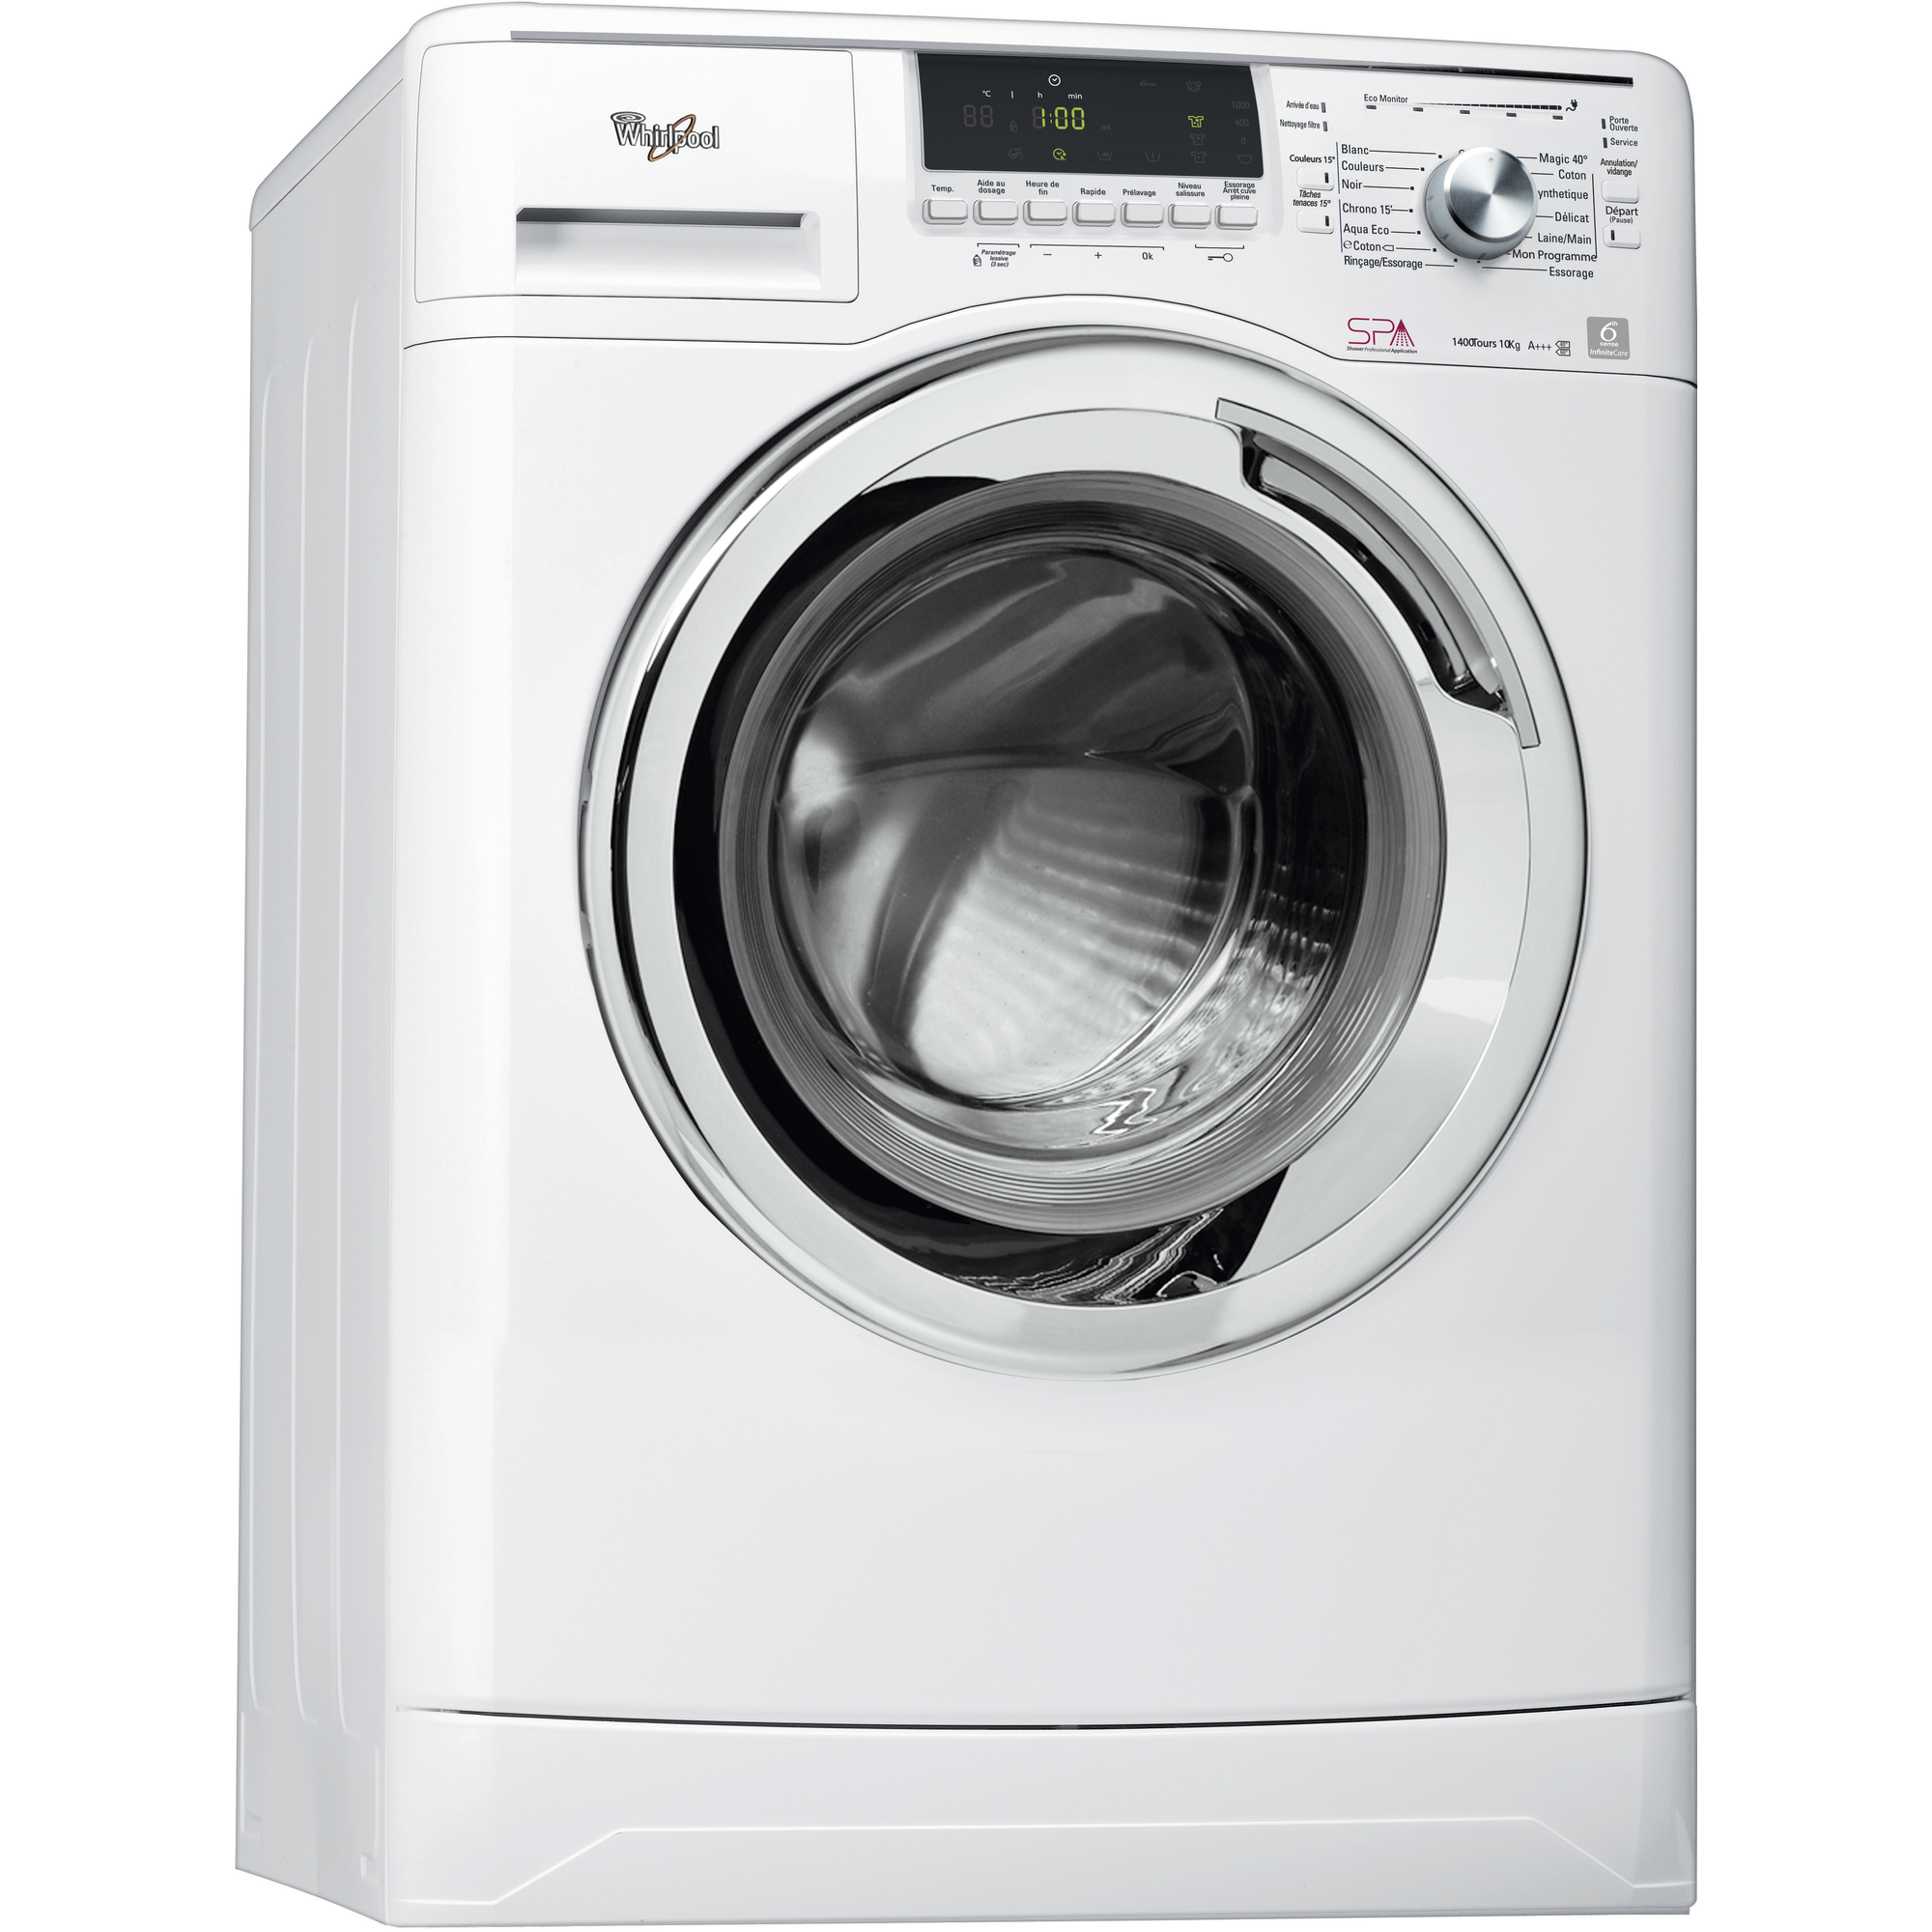 Lave linge whirlpool - Dimension machine a laver frontale ...